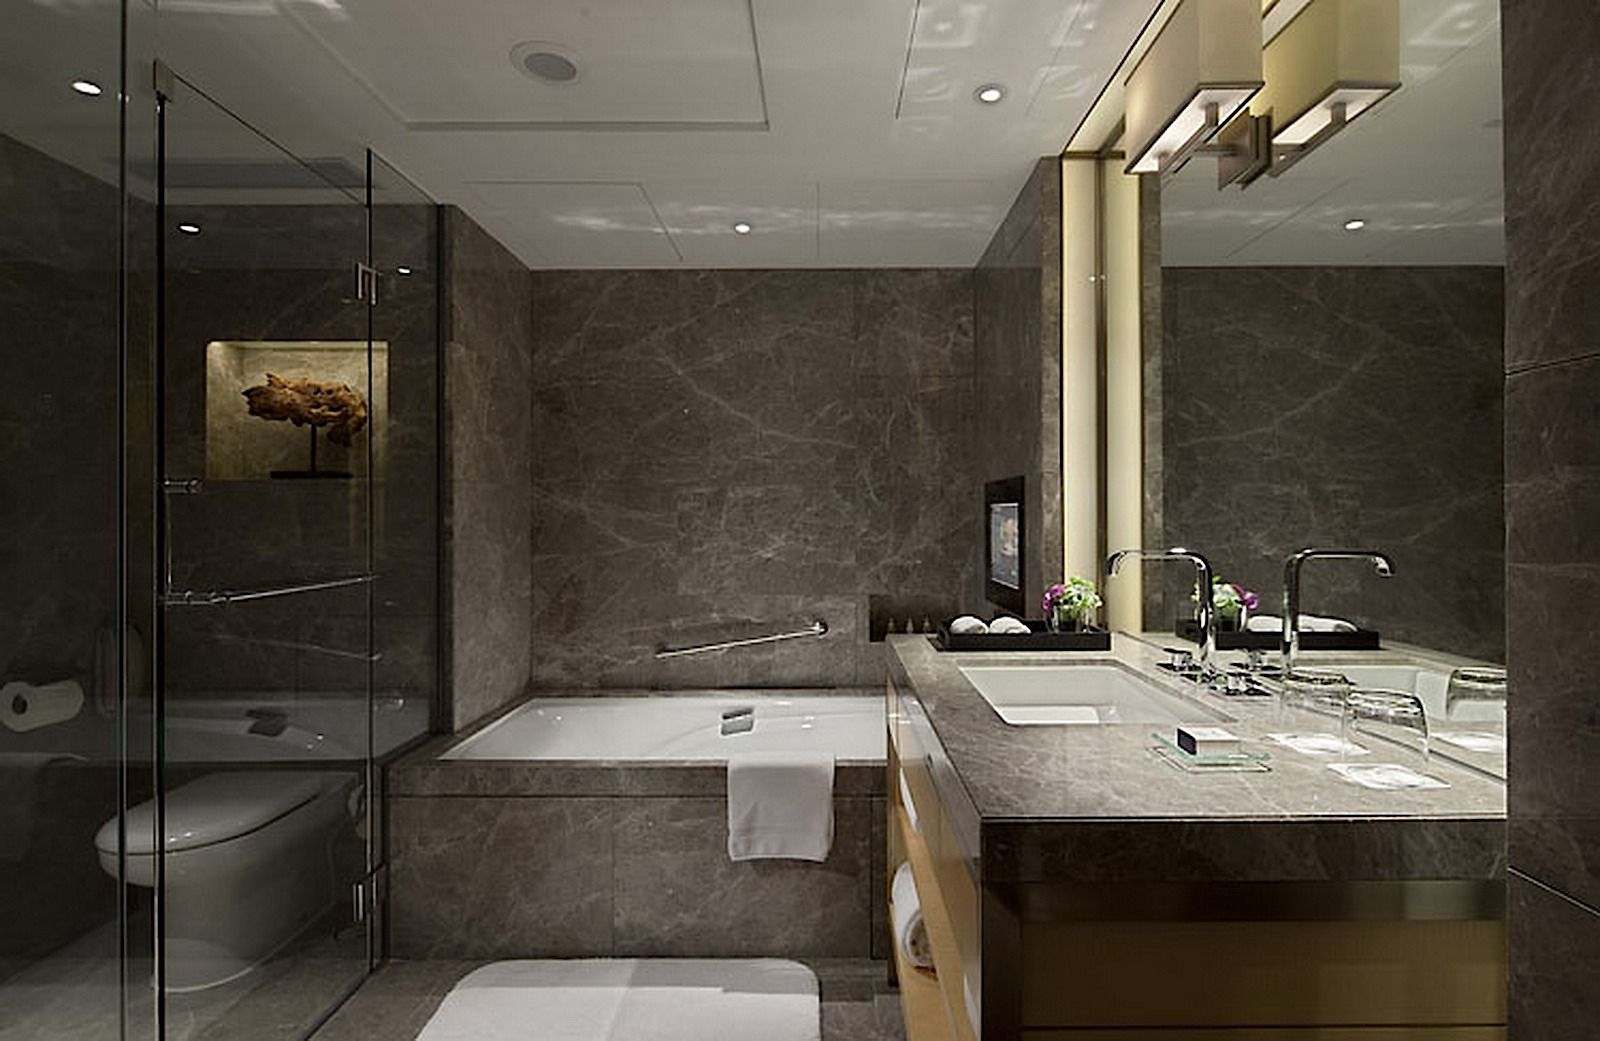 Best 5 Star Hotel Bathroom Design Hotel Bathroom Design 400 x 300